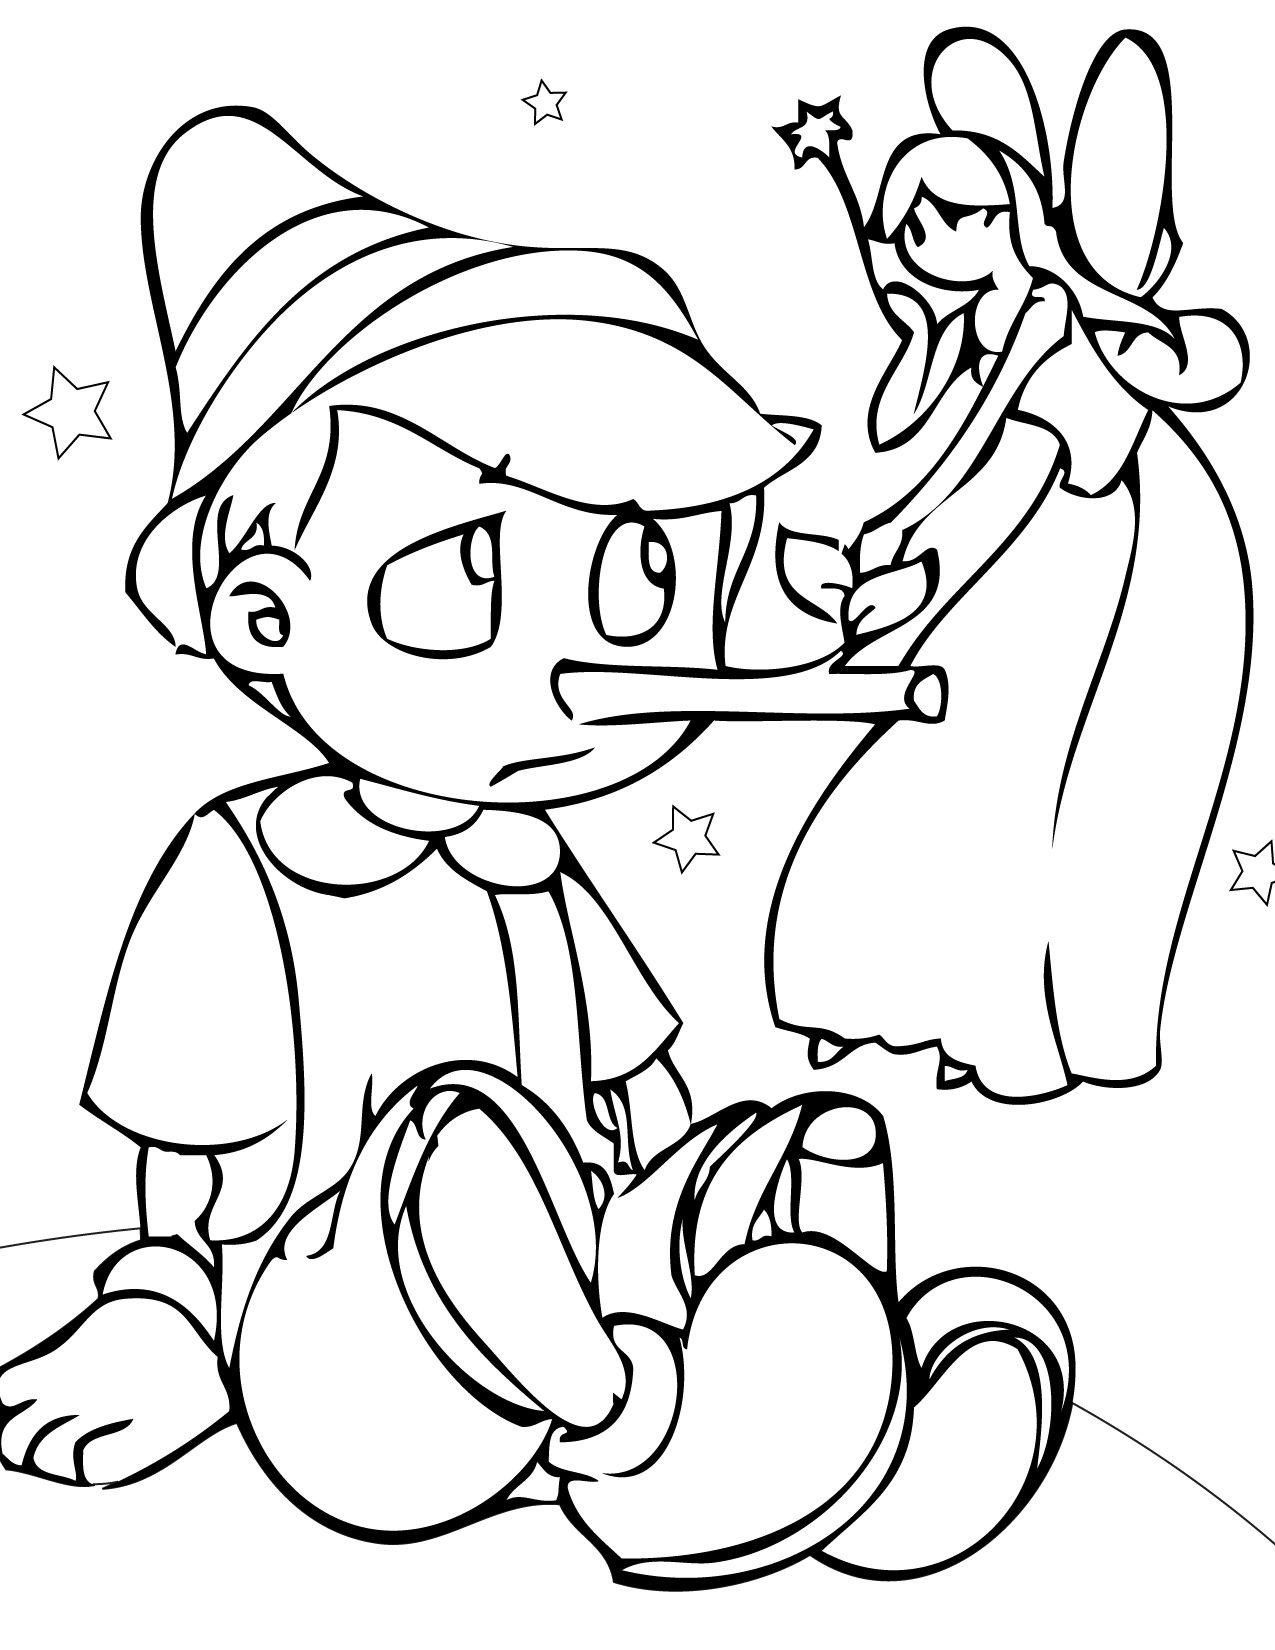 Free Printable Pinocchio Coloring Pages For Kids | coloring_pages ...